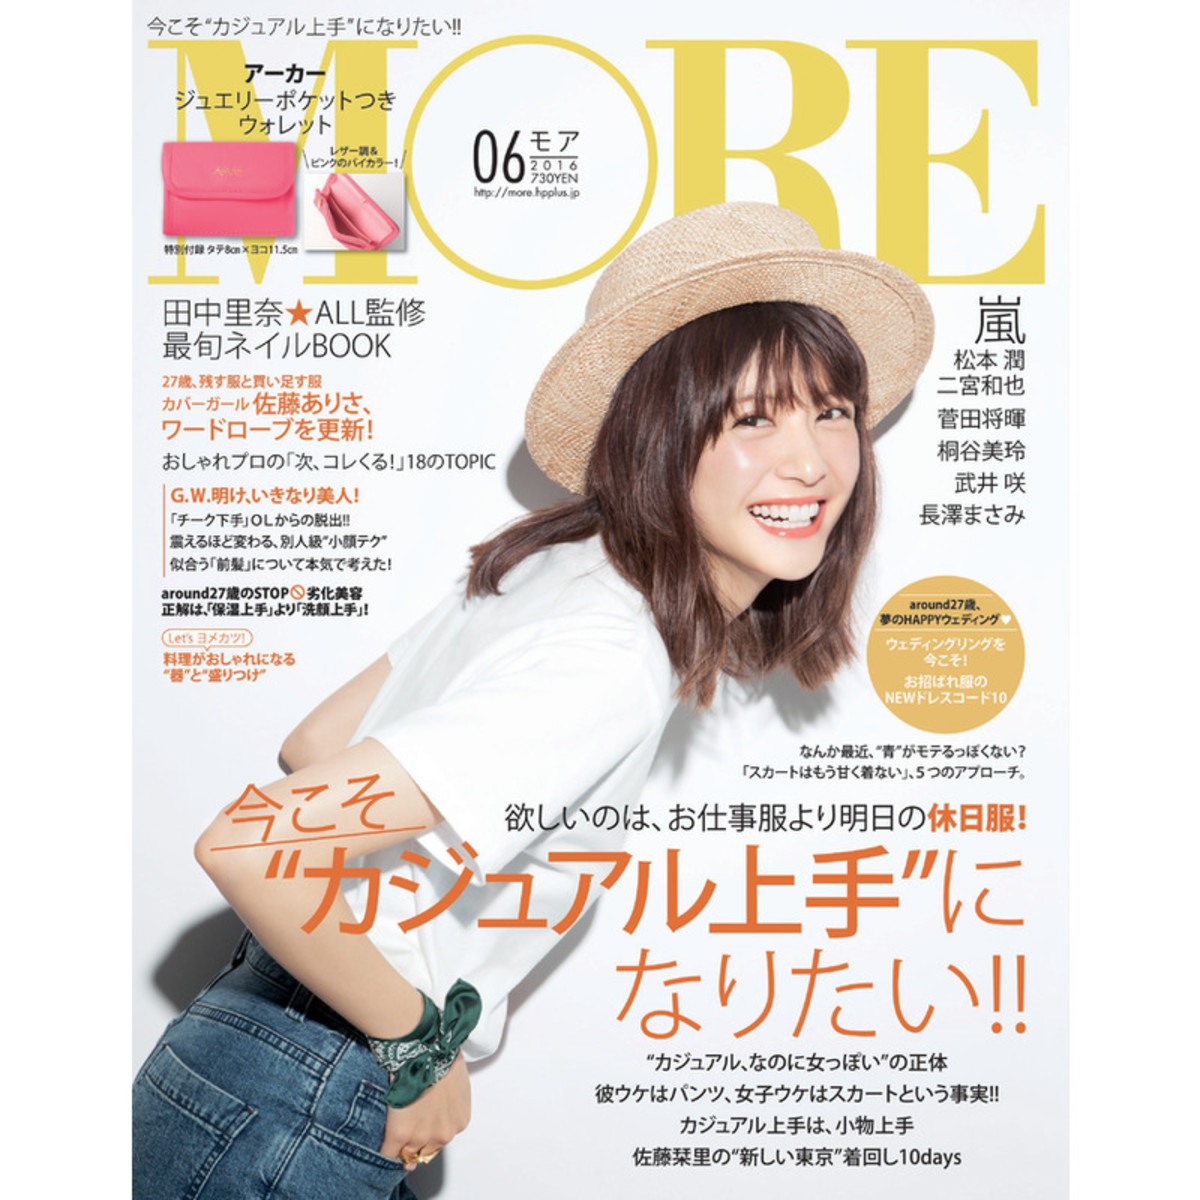 10 Popular Japanese Fashion Magazines For Women  Hubpages-8788